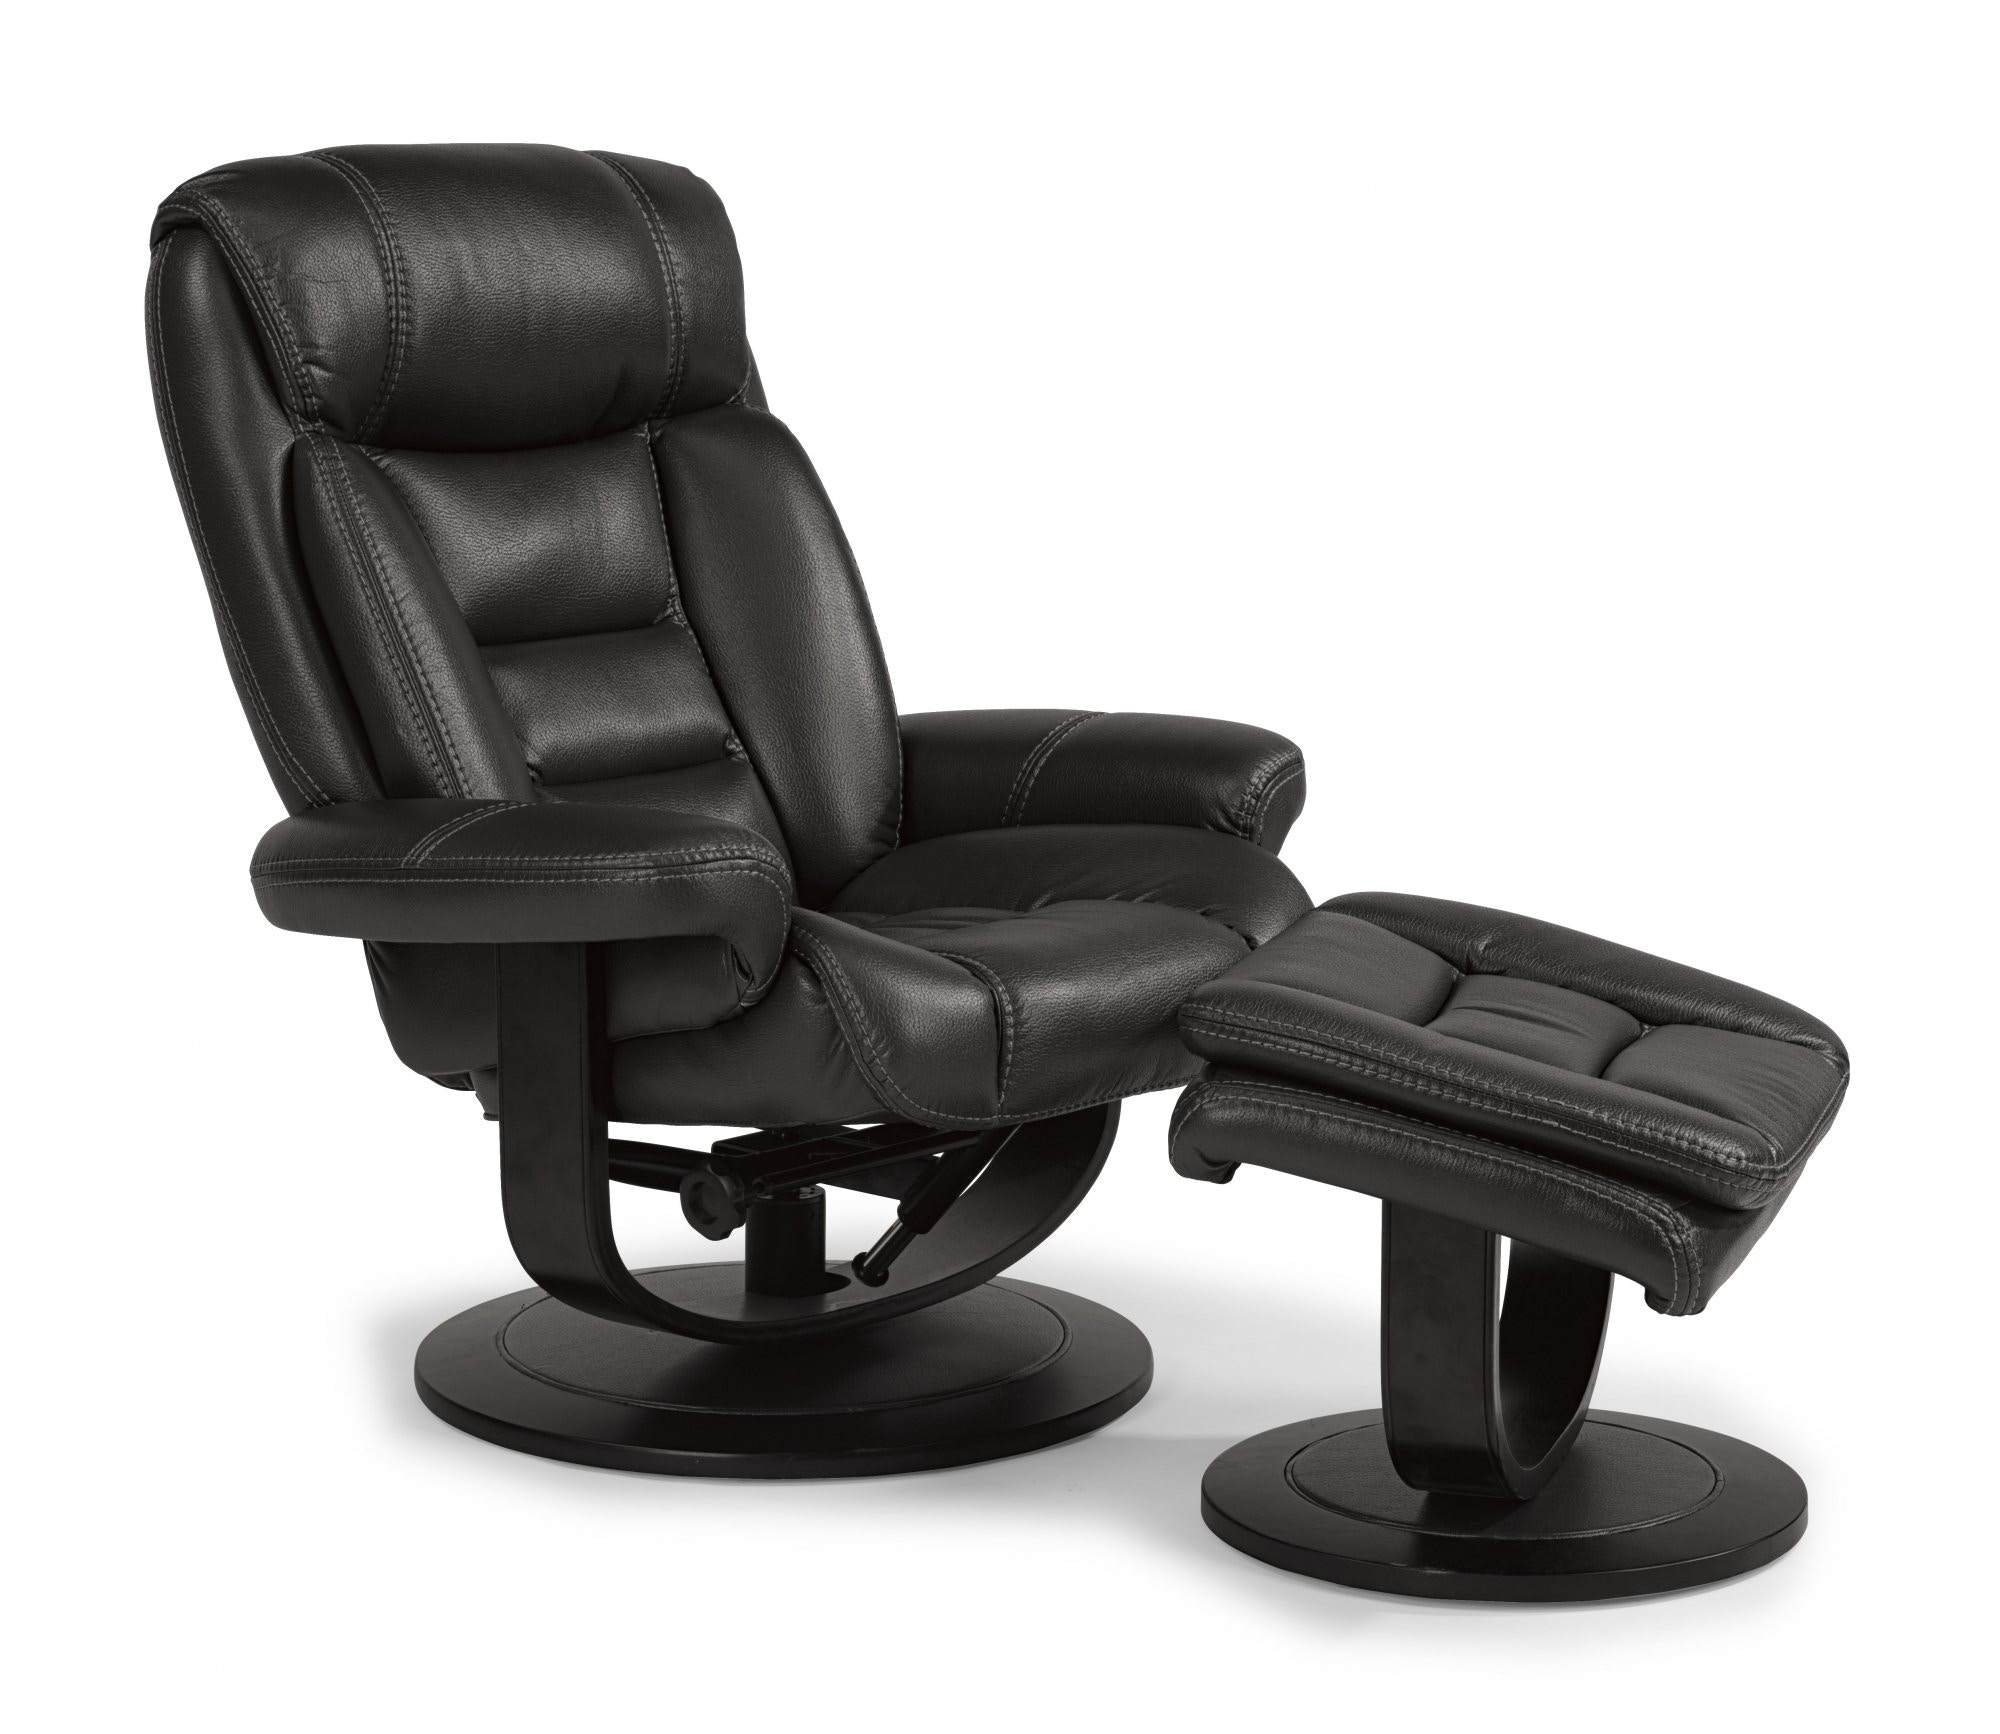 Flexsteel Recliner Chair And Ottoman 456860